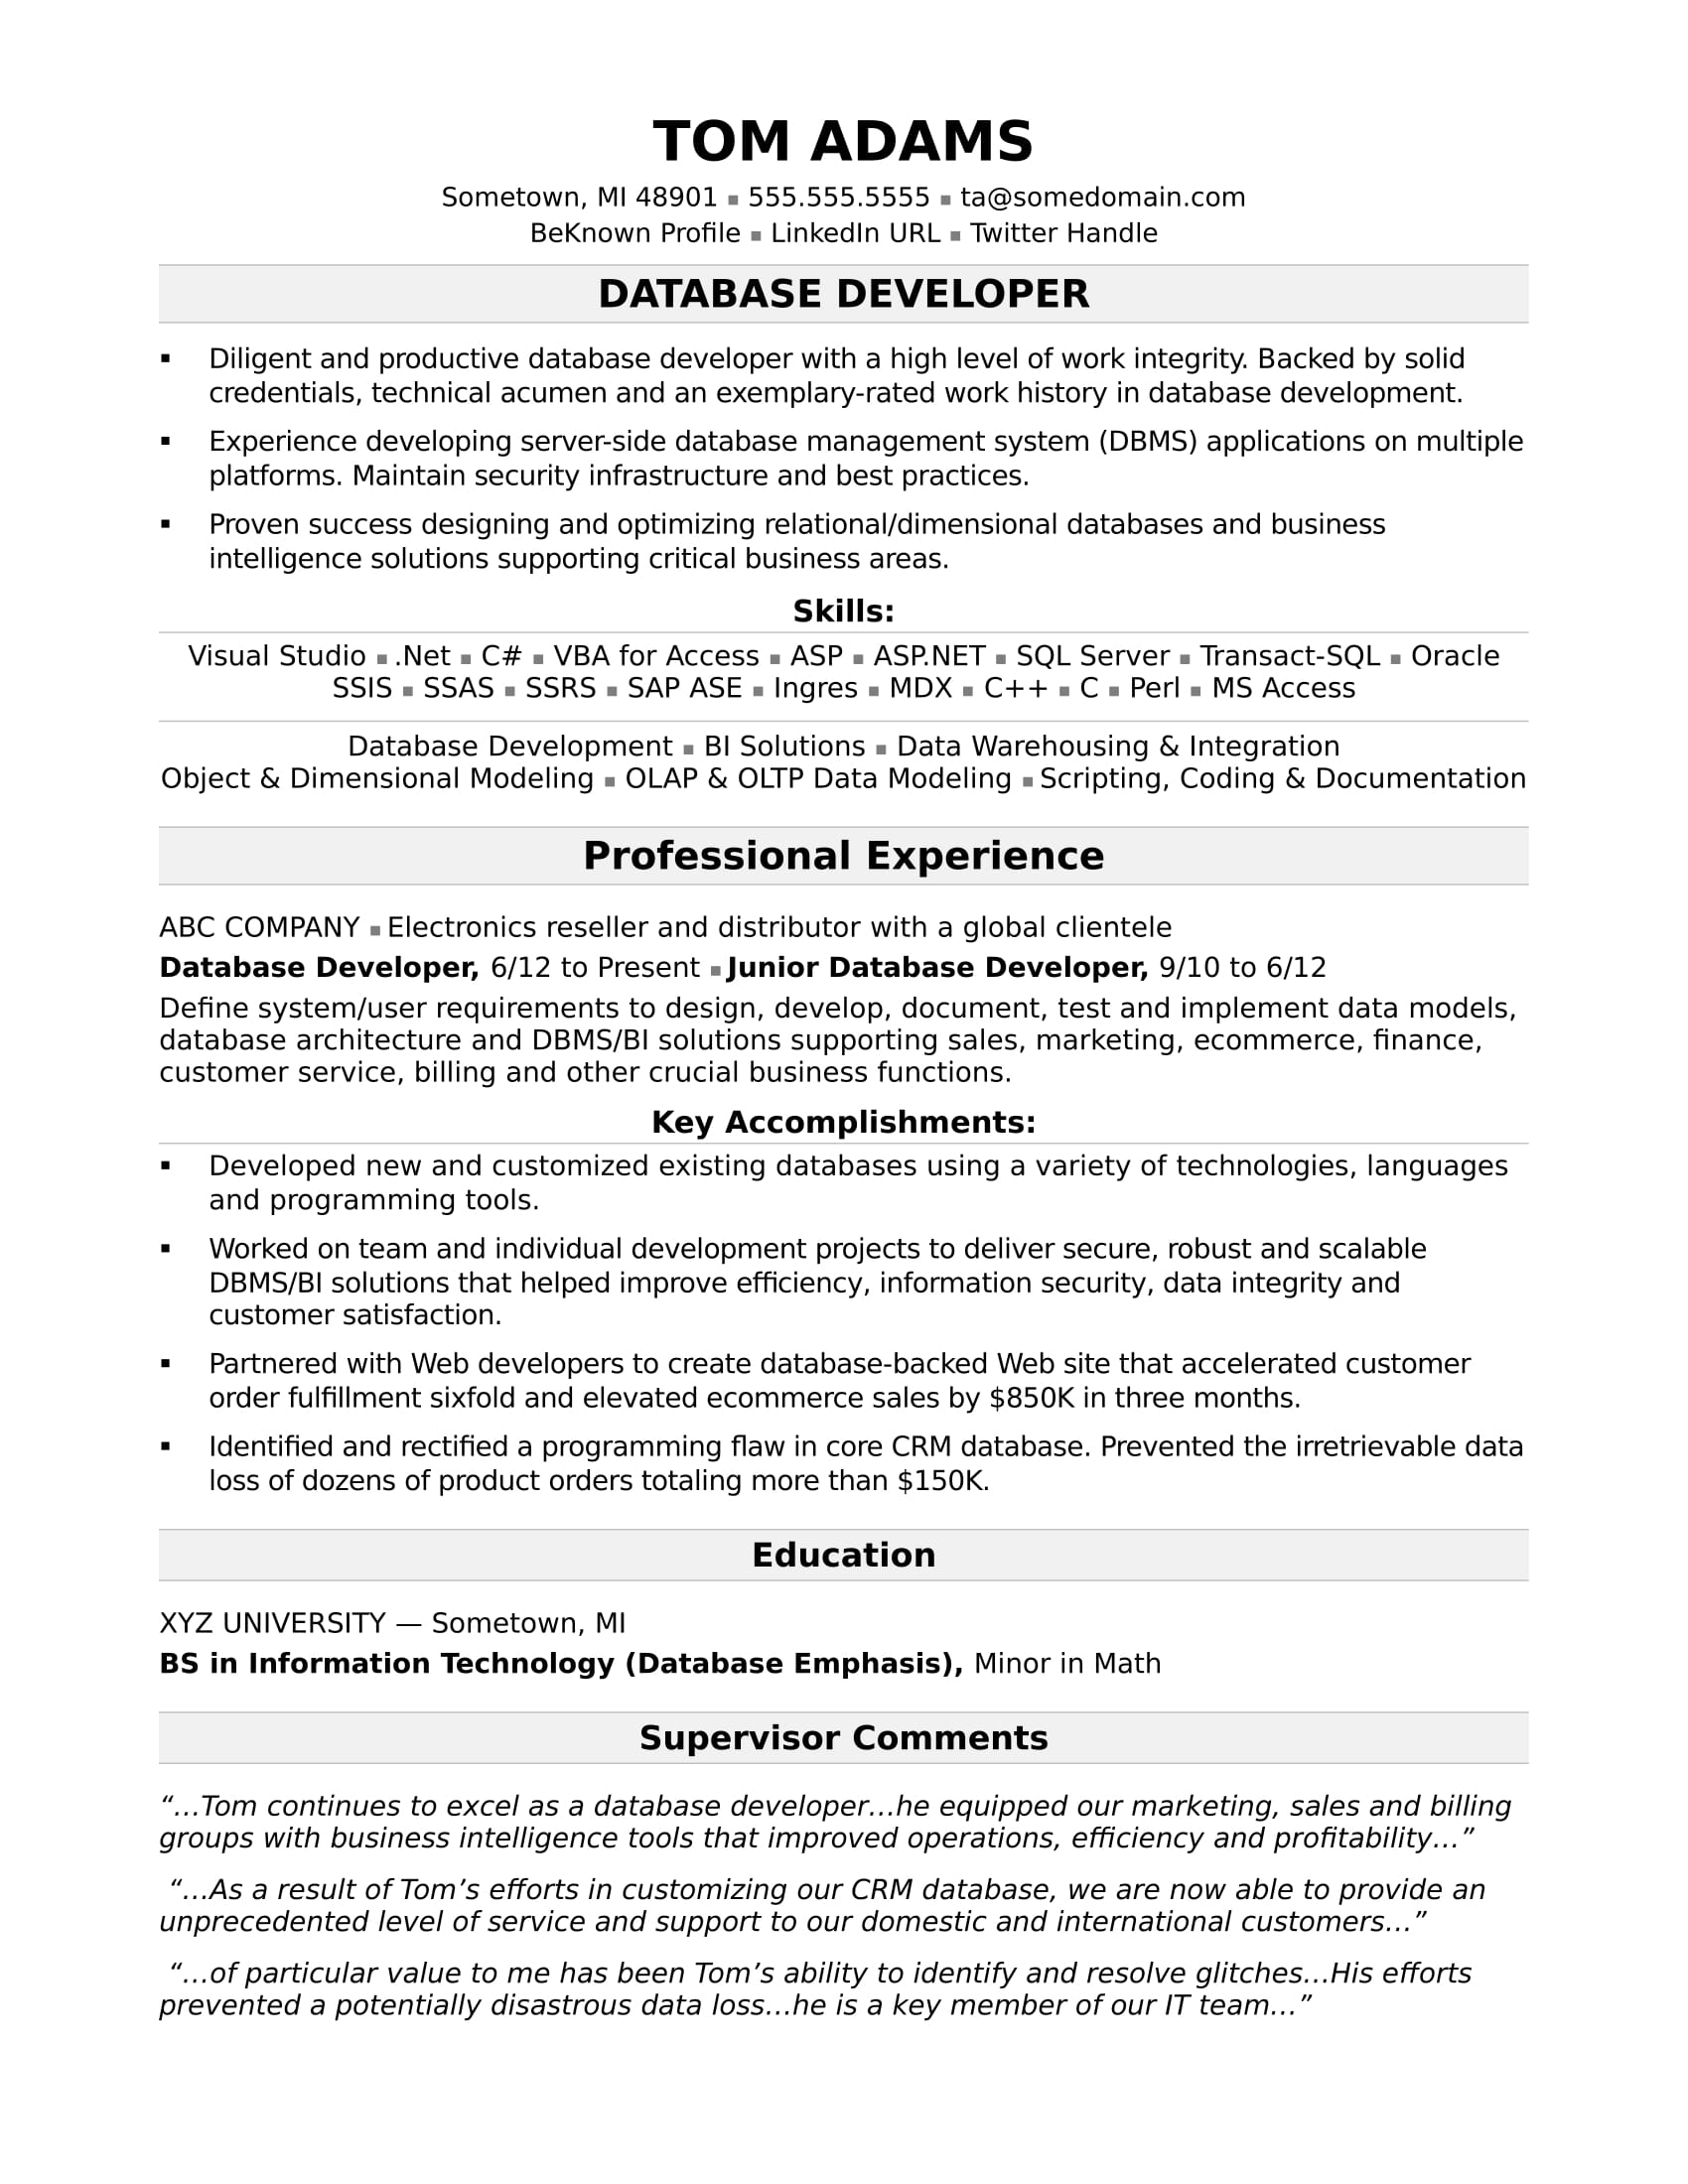 Sample resume for a midlevel it developer monster sample resume for a midlevel it developer yelopaper Images